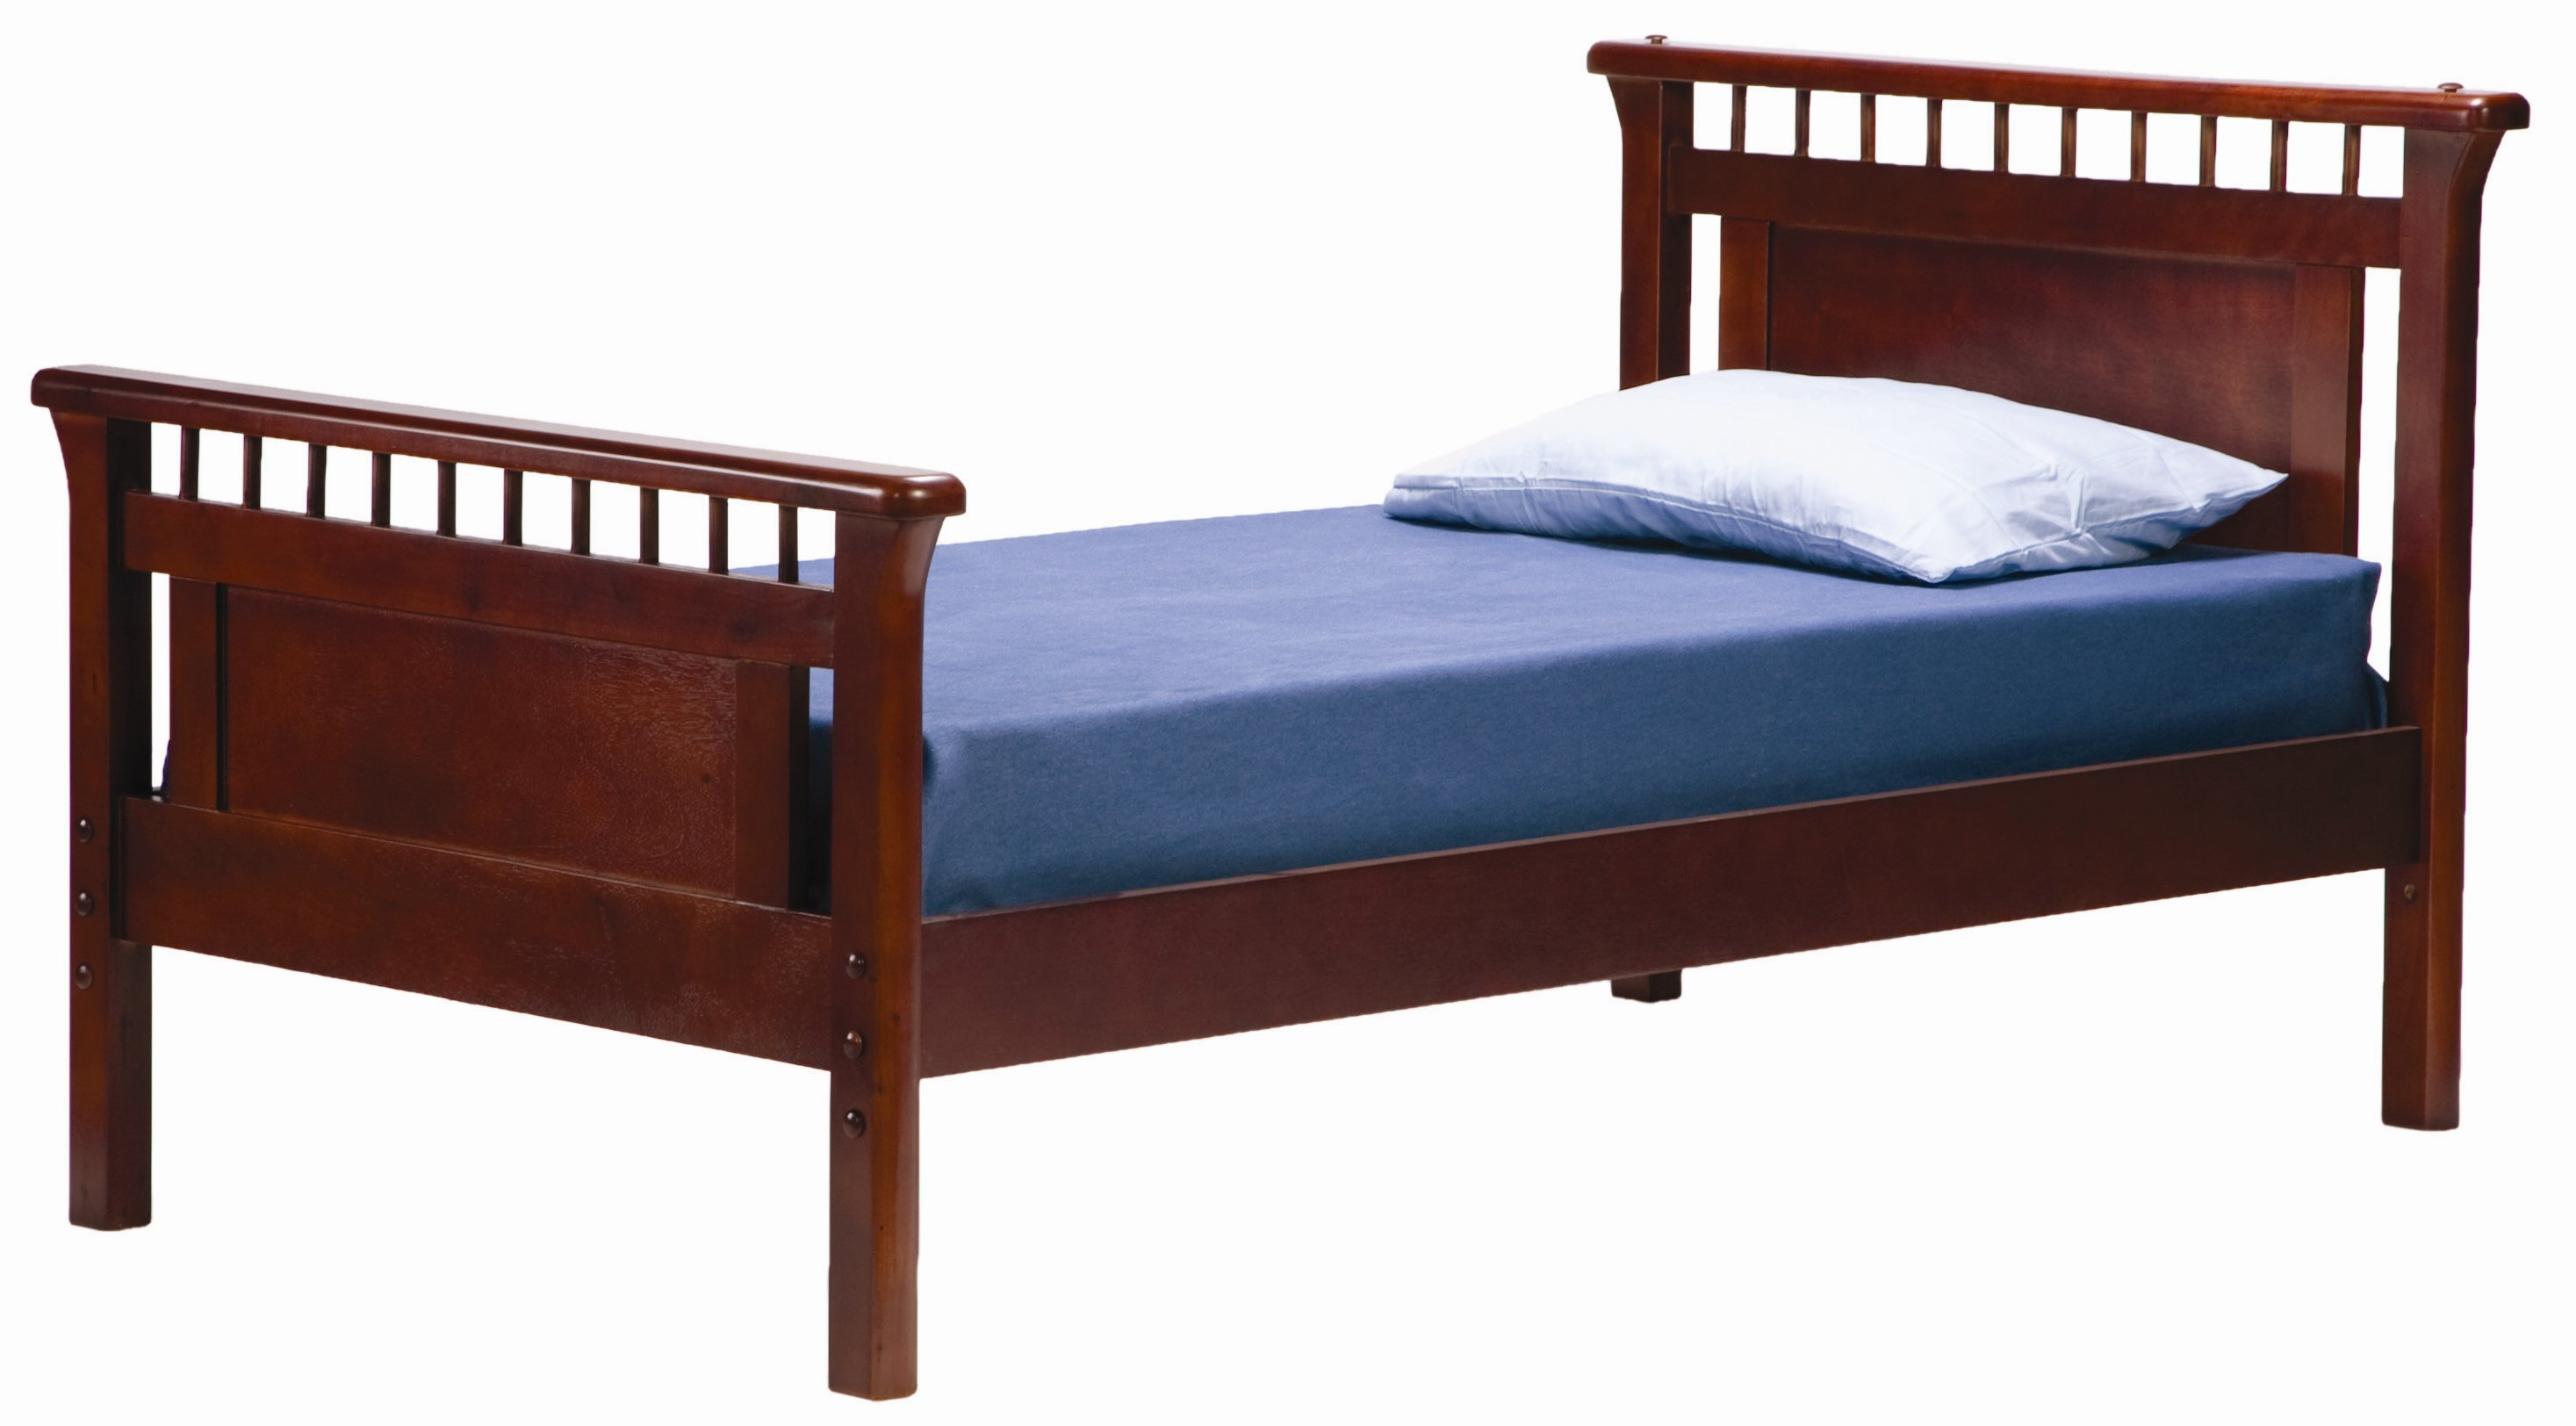 Bolton Furniture Bennington Kids Bed Best Price